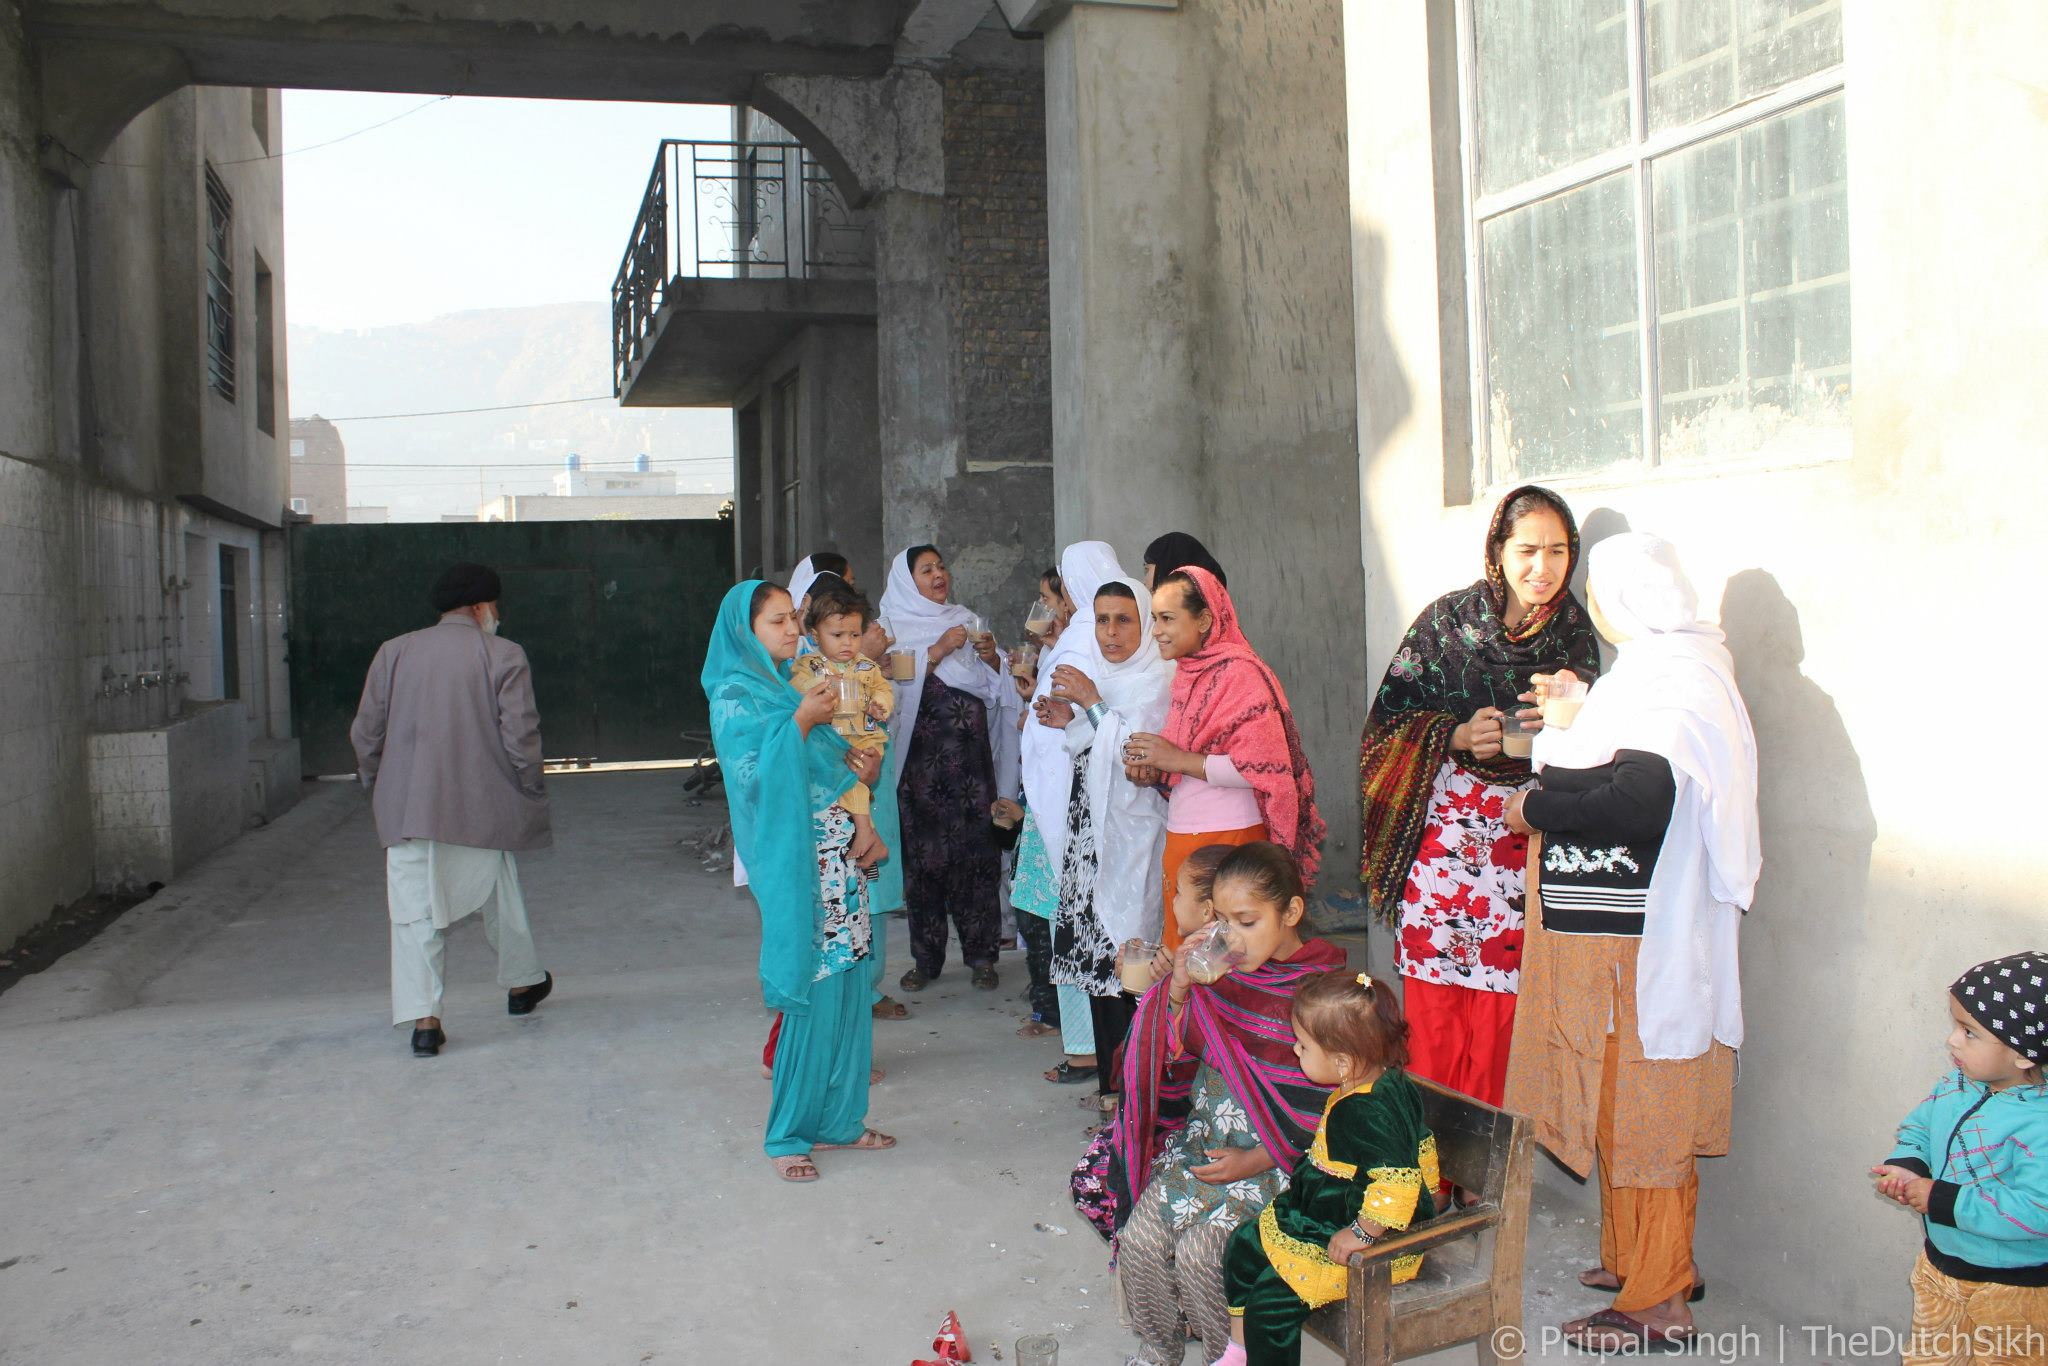 Women and children standing outside of Kabul's Gurduara Harirai Sahib in 2012. Photograph by Pritpal Singh.